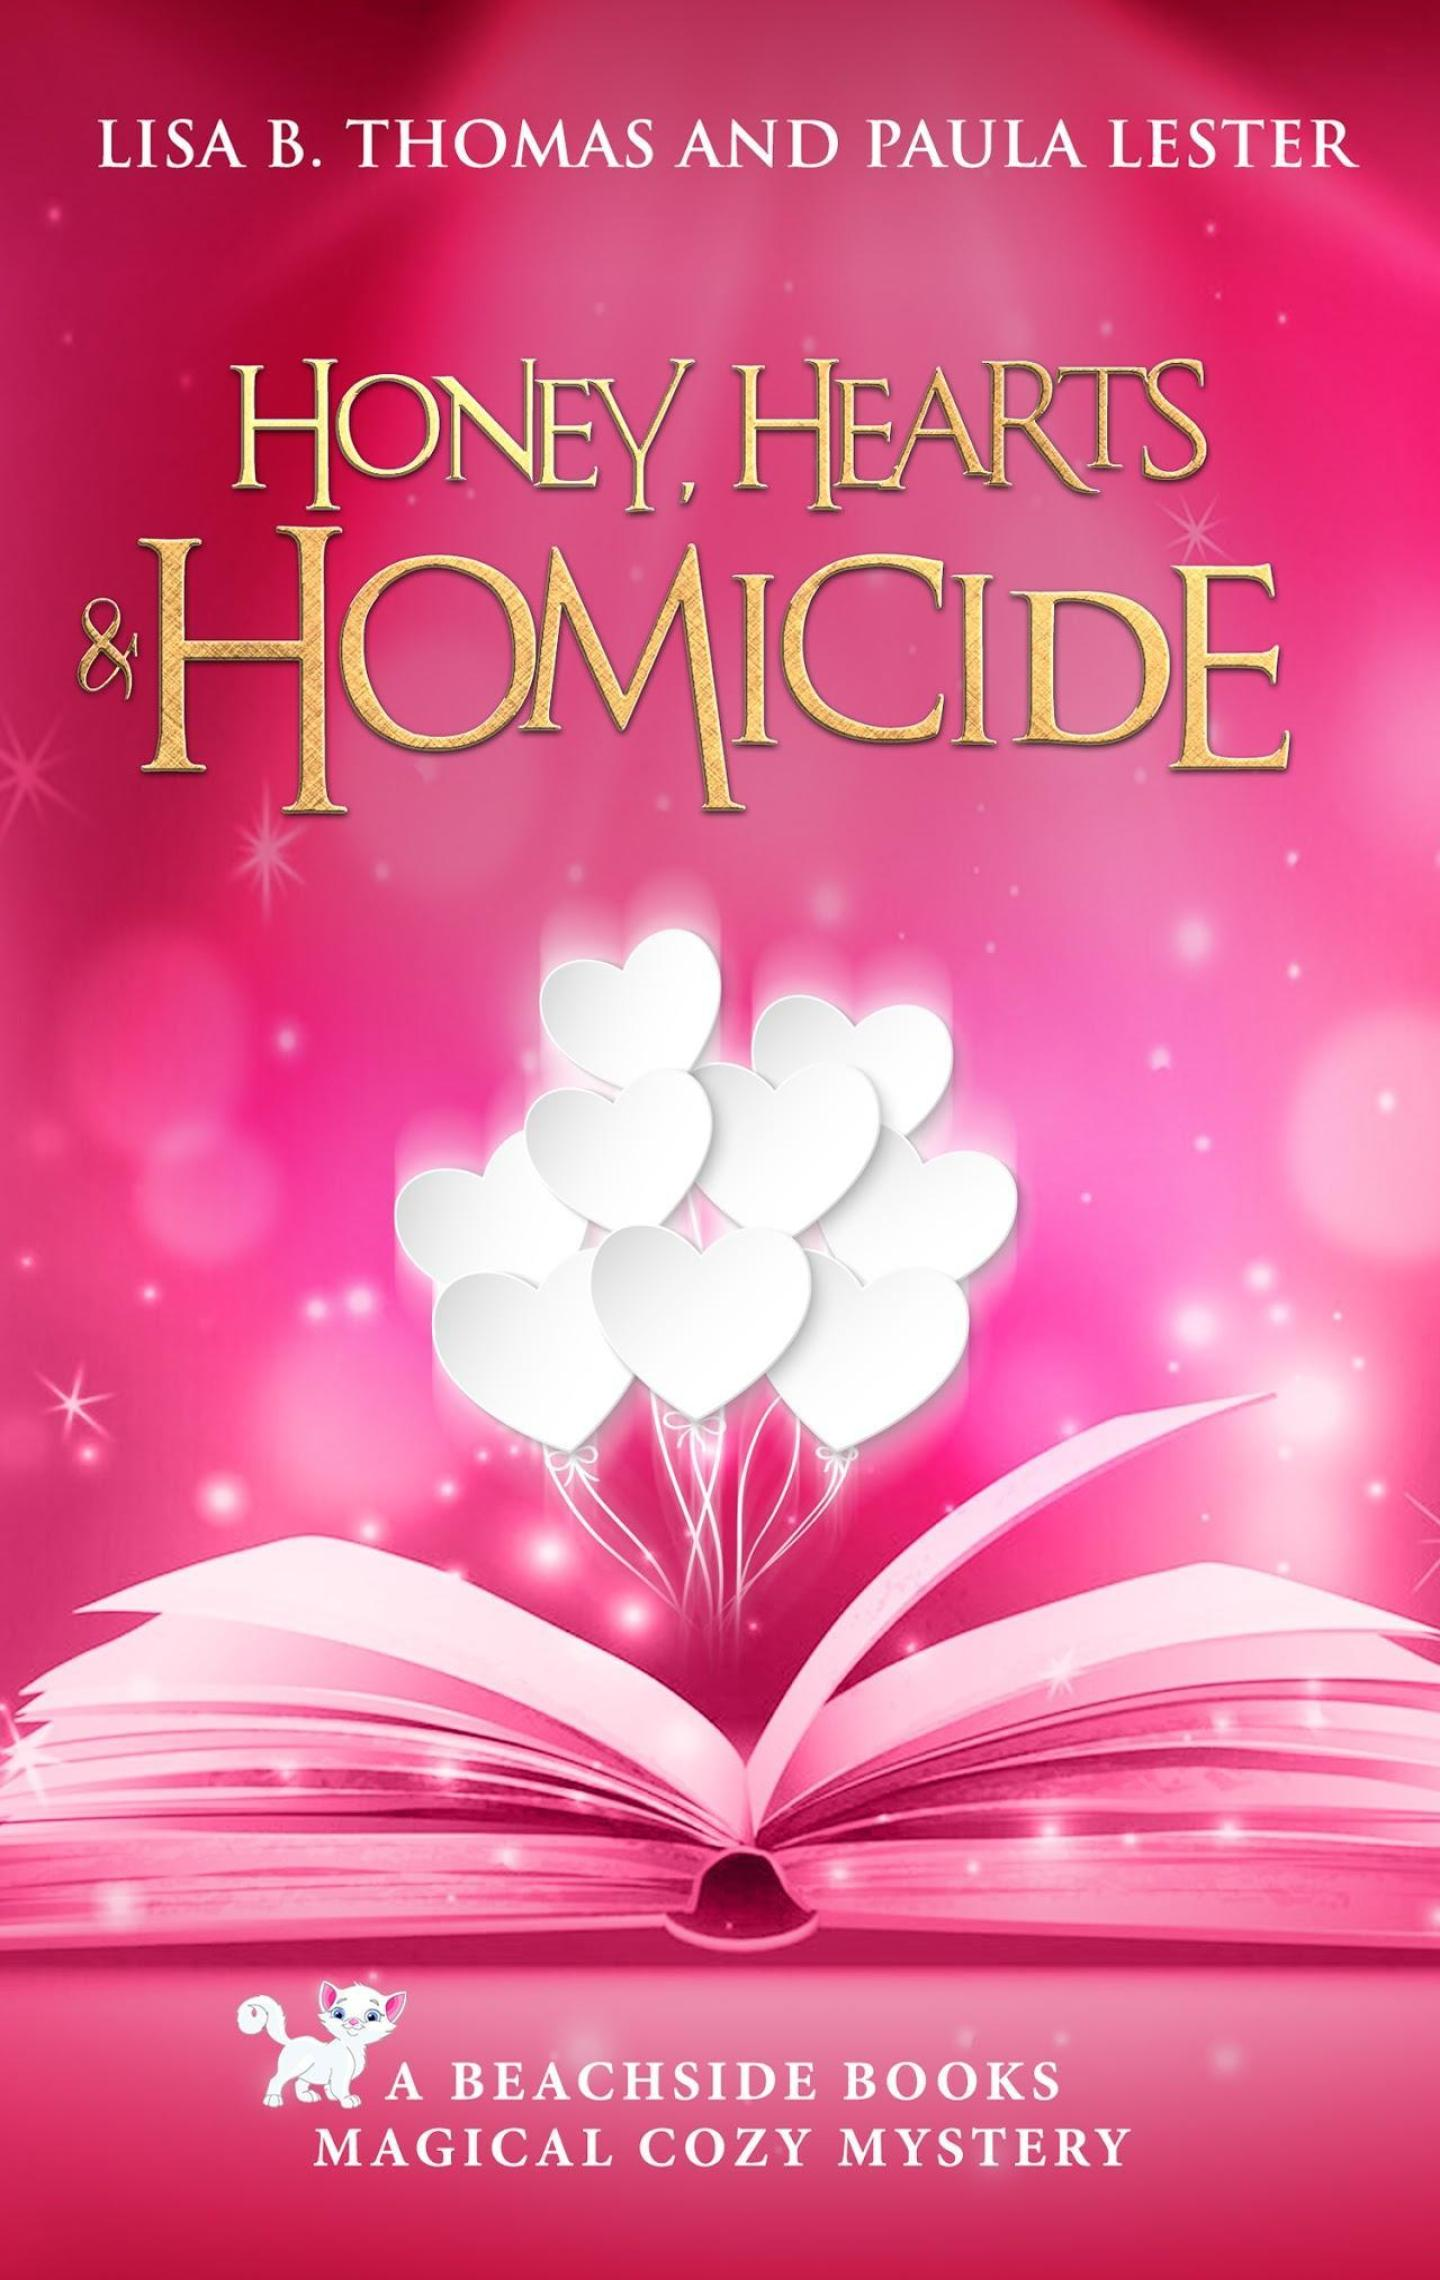 Honey, Hearts and Homicide (Beachside Books 6)